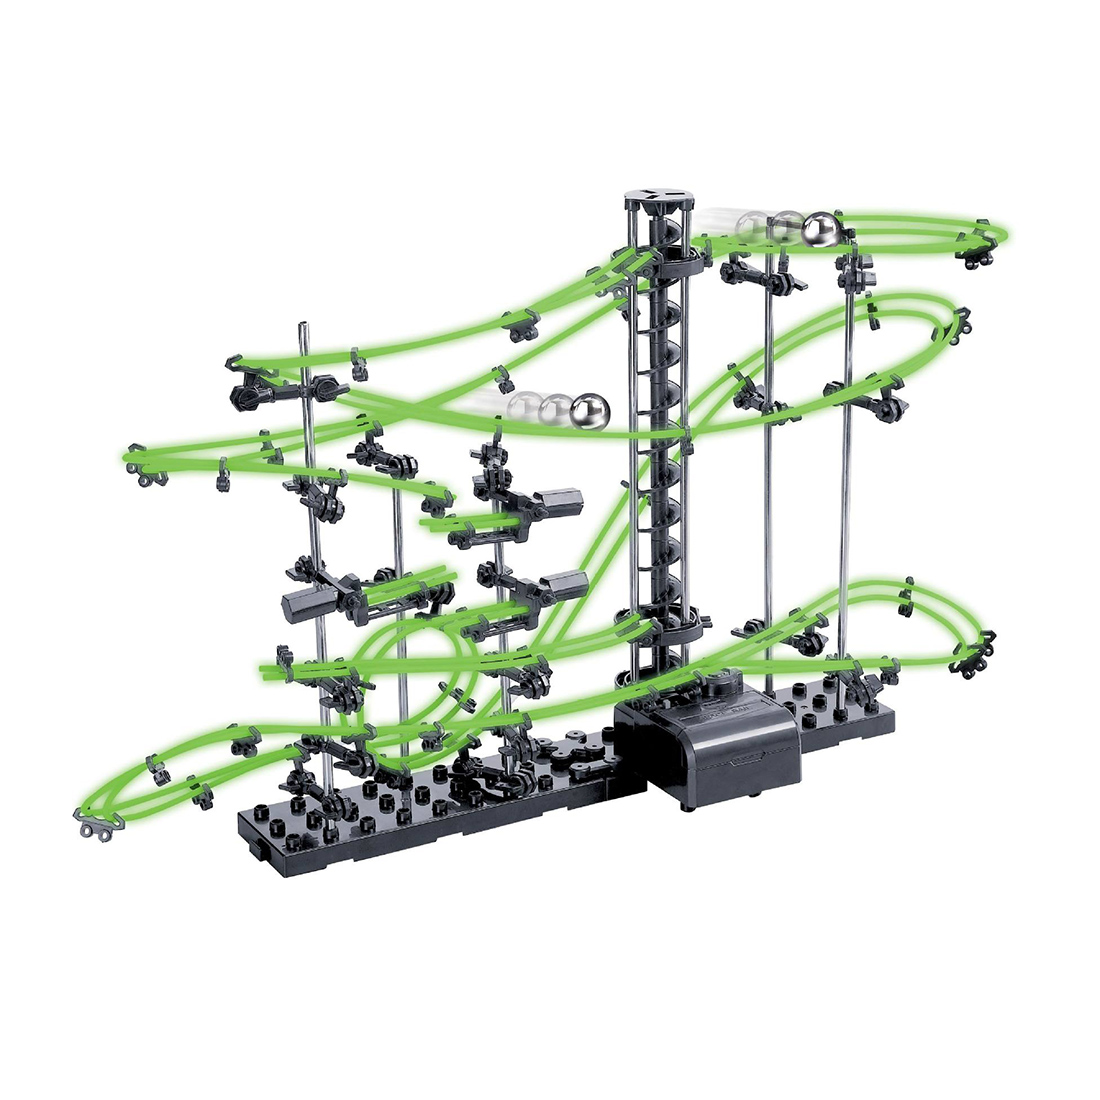 DIY Educational Toys Spacerail Level 2 Glow In The Dark Marble Roller Coaster with Steel Balls 10000mm Learning Toys For KidsDIY Educational Toys Spacerail Level 2 Glow In The Dark Marble Roller Coaster with Steel Balls 10000mm Learning Toys For Kids